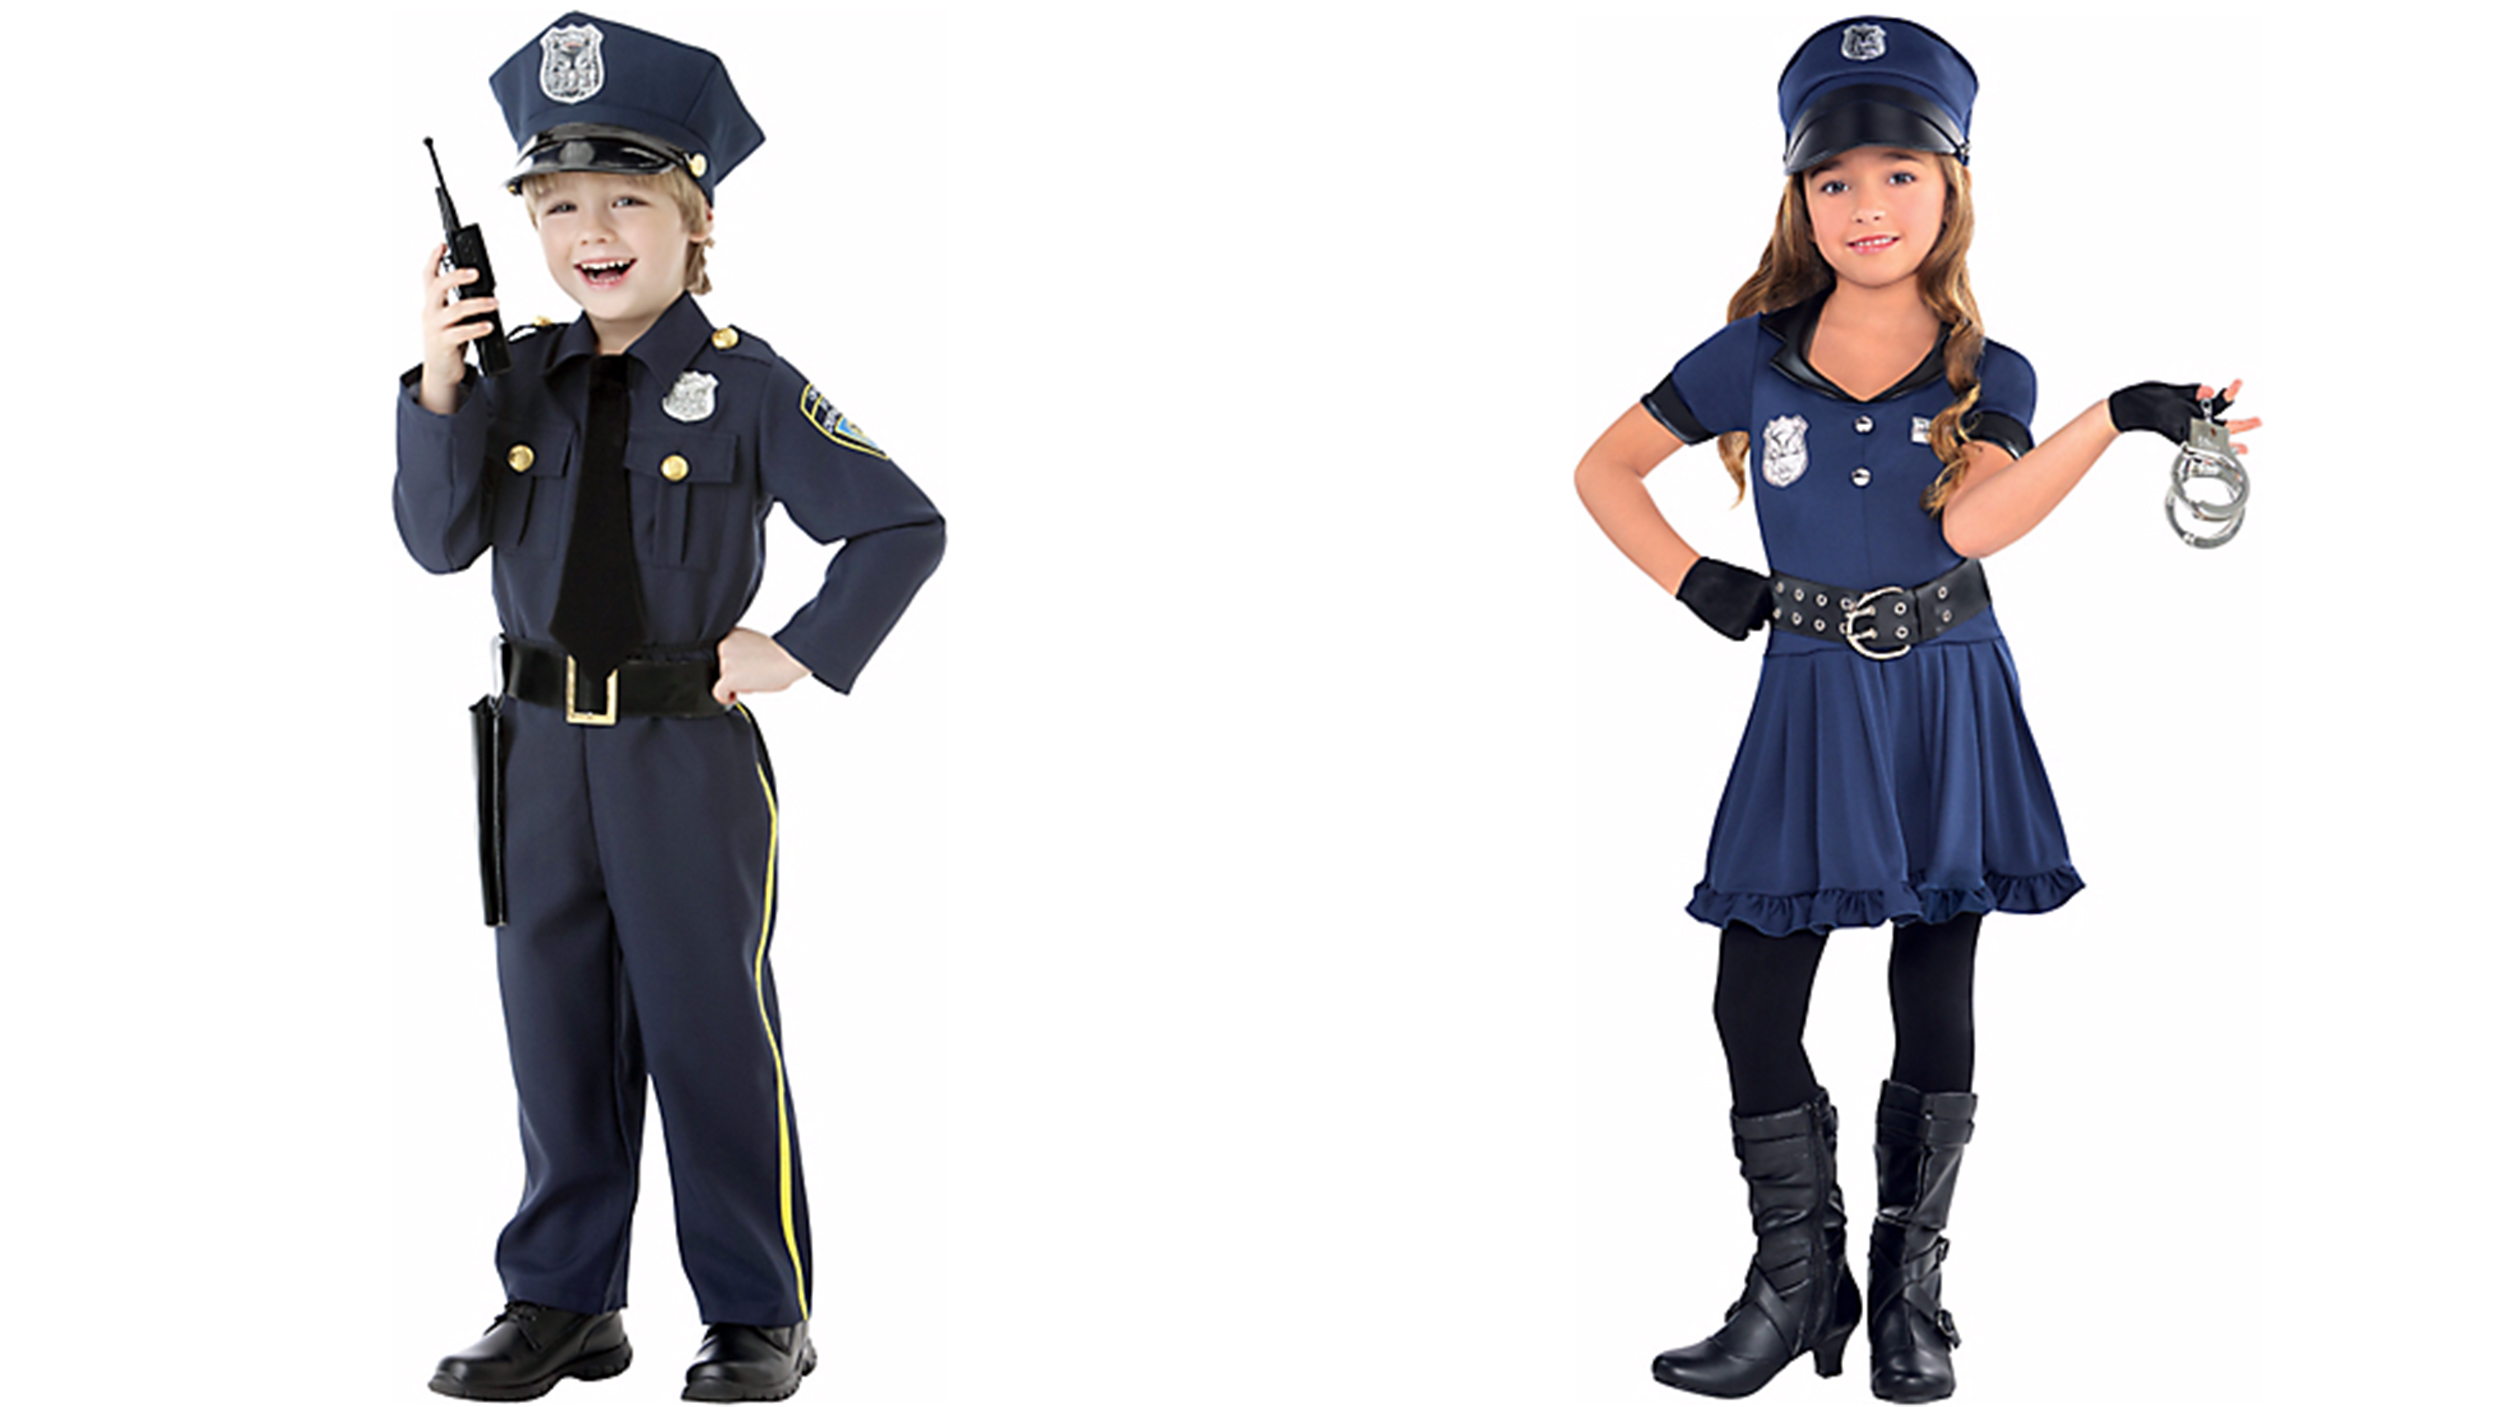 mom takes party city to task over 'sexualized' costumes for little girls